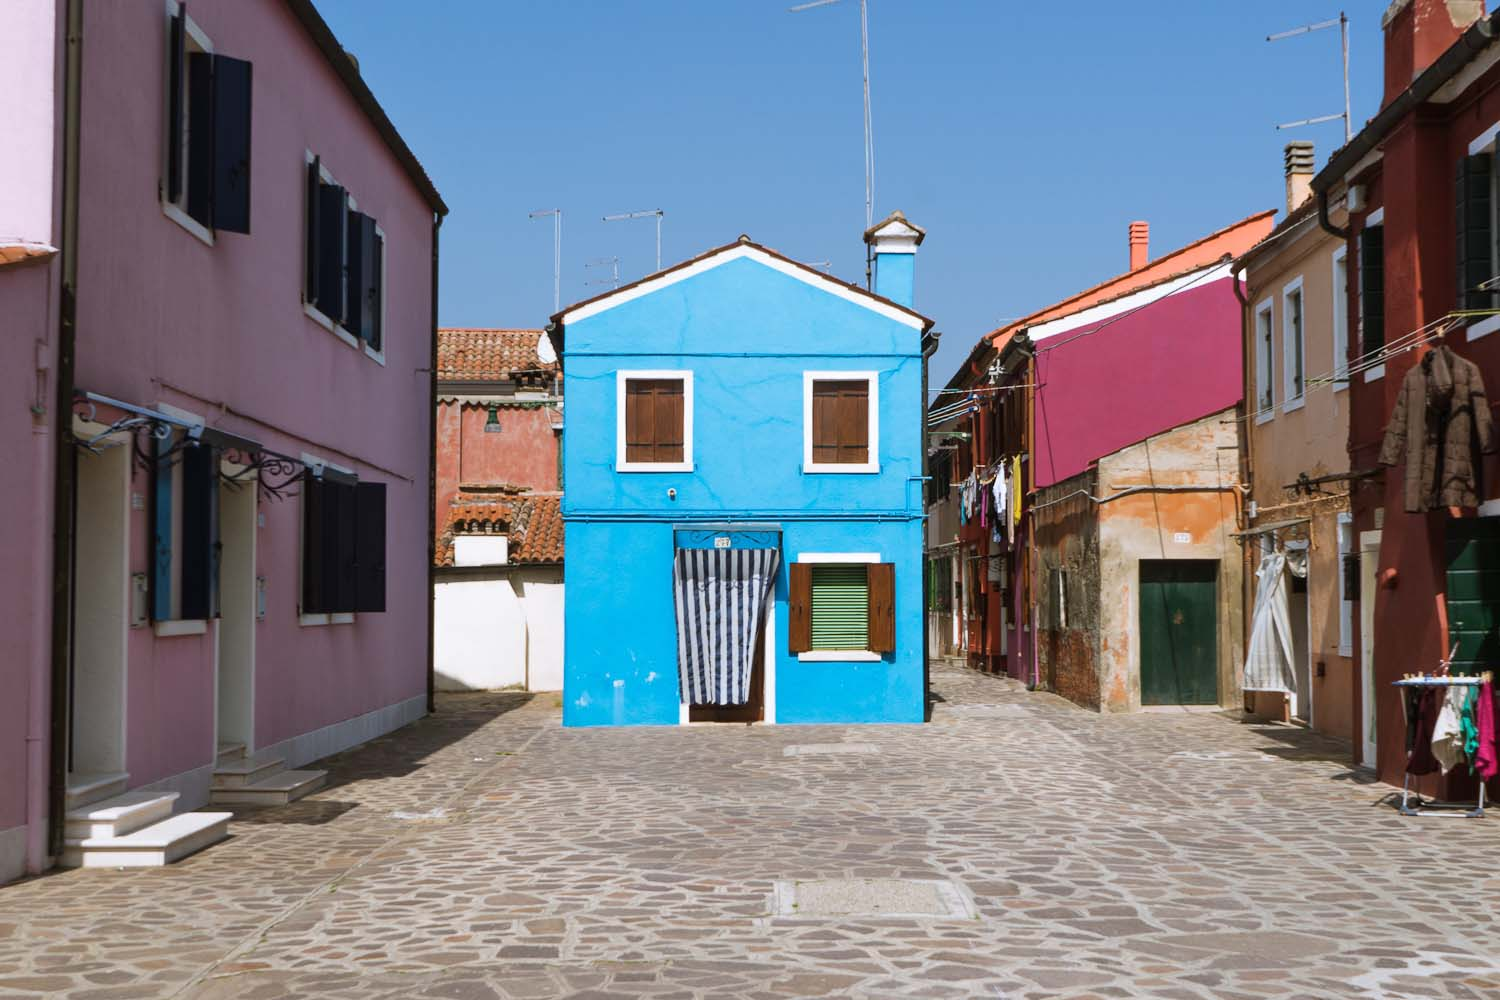 #SavingVenice guide to the best photo spots in Venice - Burano